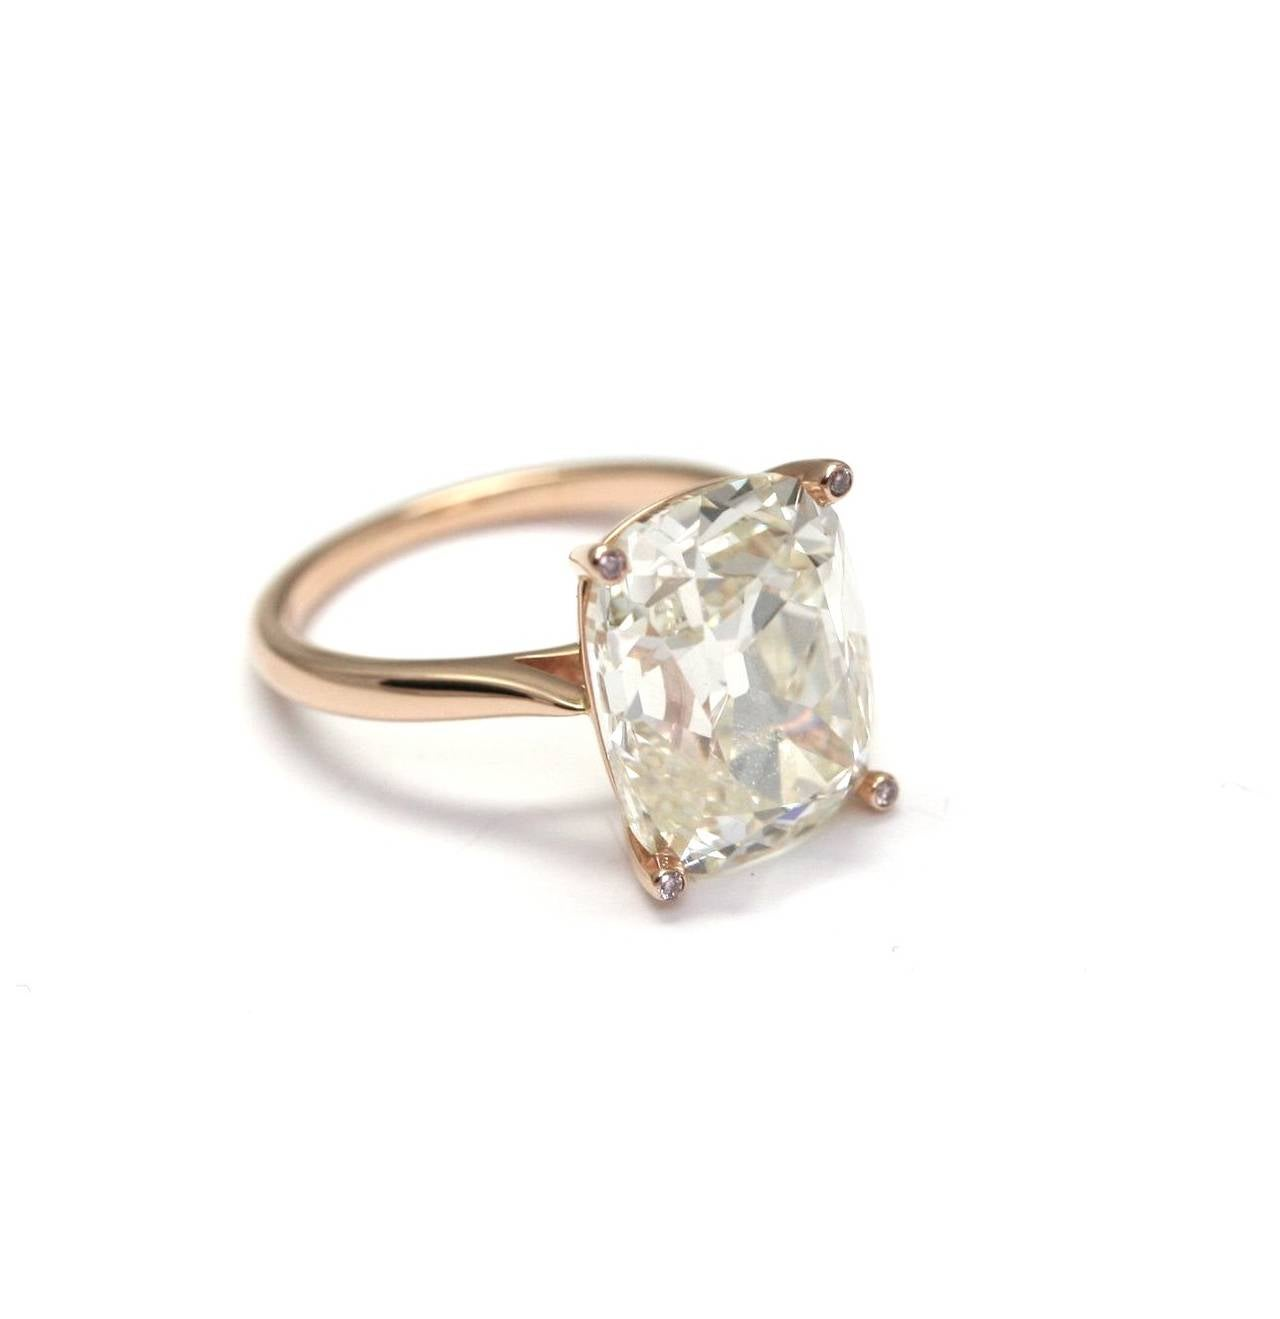 10 21 carat cushion cut gold solitaire engagement